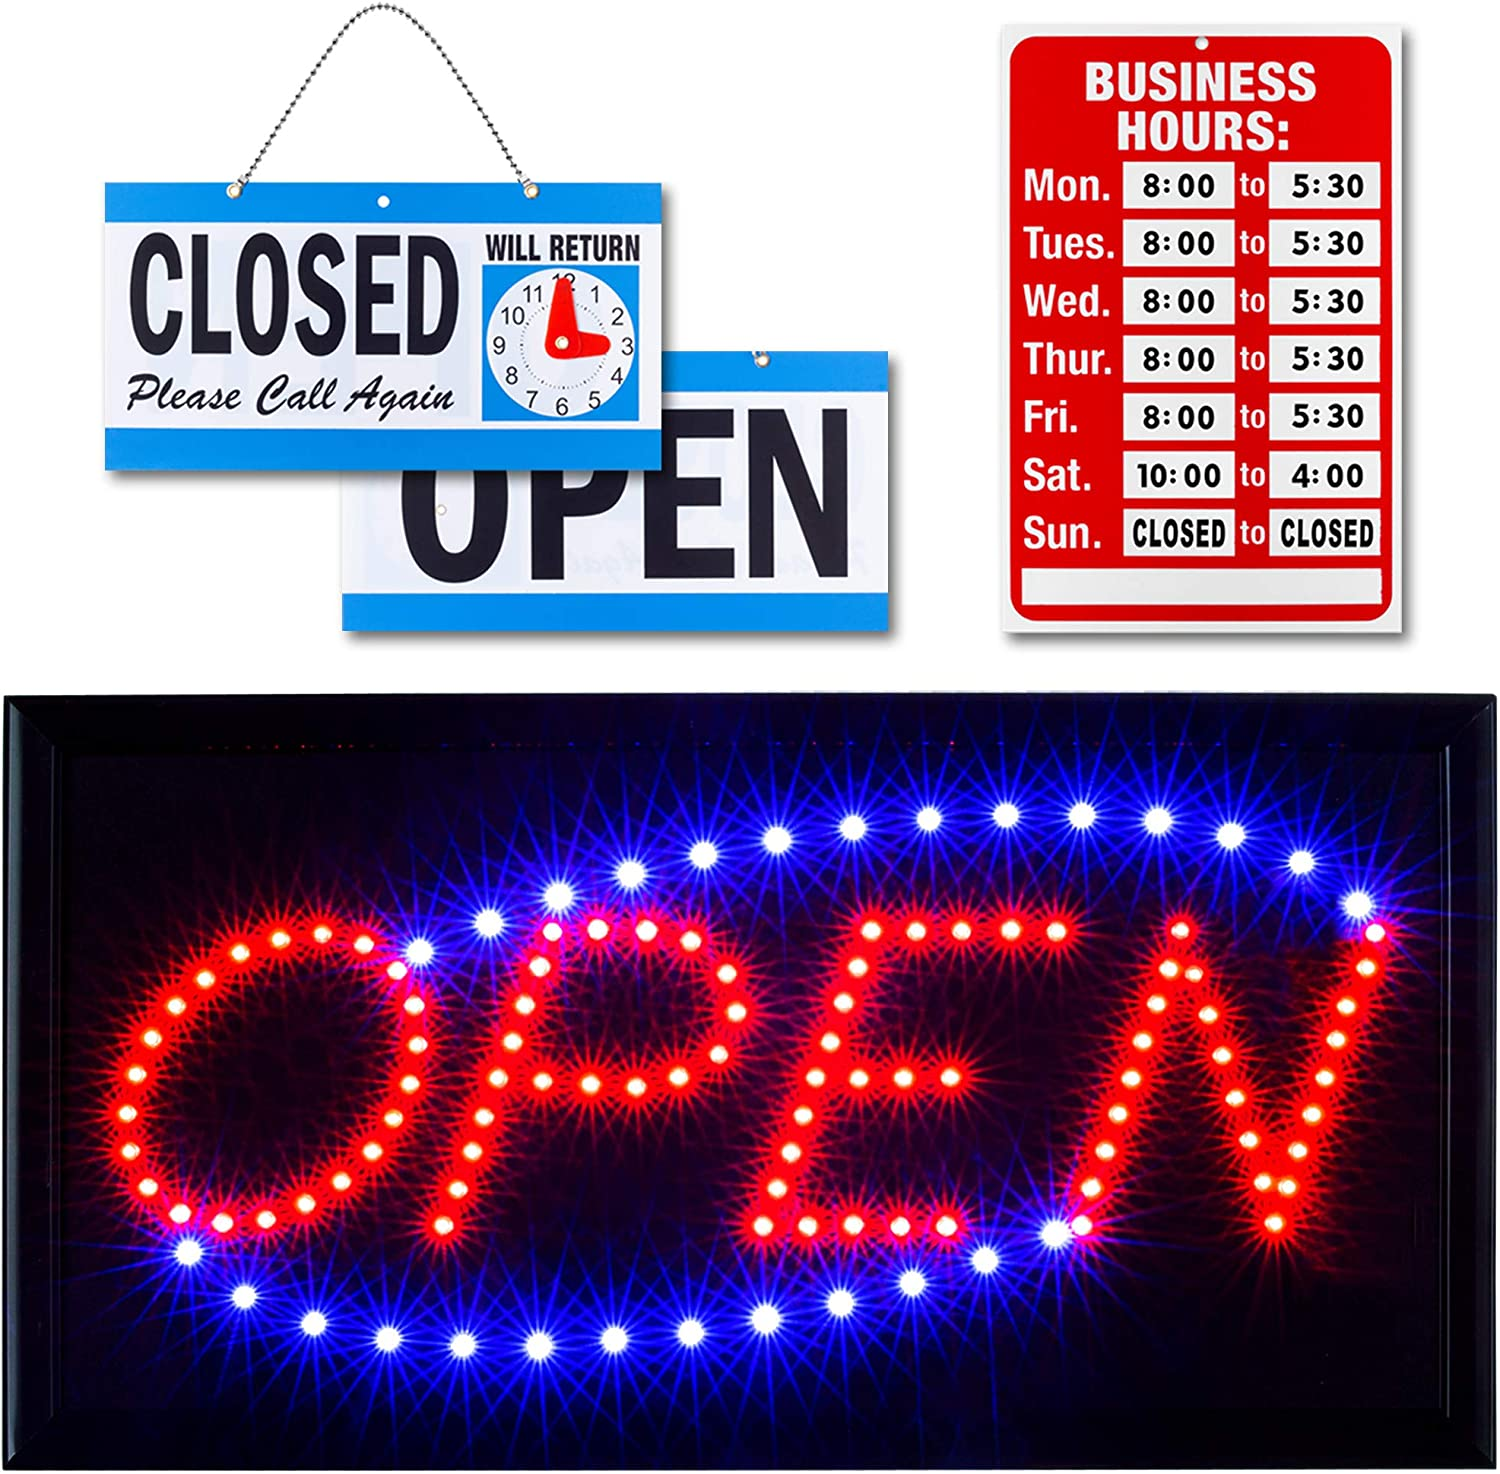 Ultima LED Neon Open Sign for Business: Lighted Sign Open with Flashing Mode – Indoor Electric Light up Sign for Stores (19 x 10 in, Model 2) Includes Business Hours and Open & Closed Signs